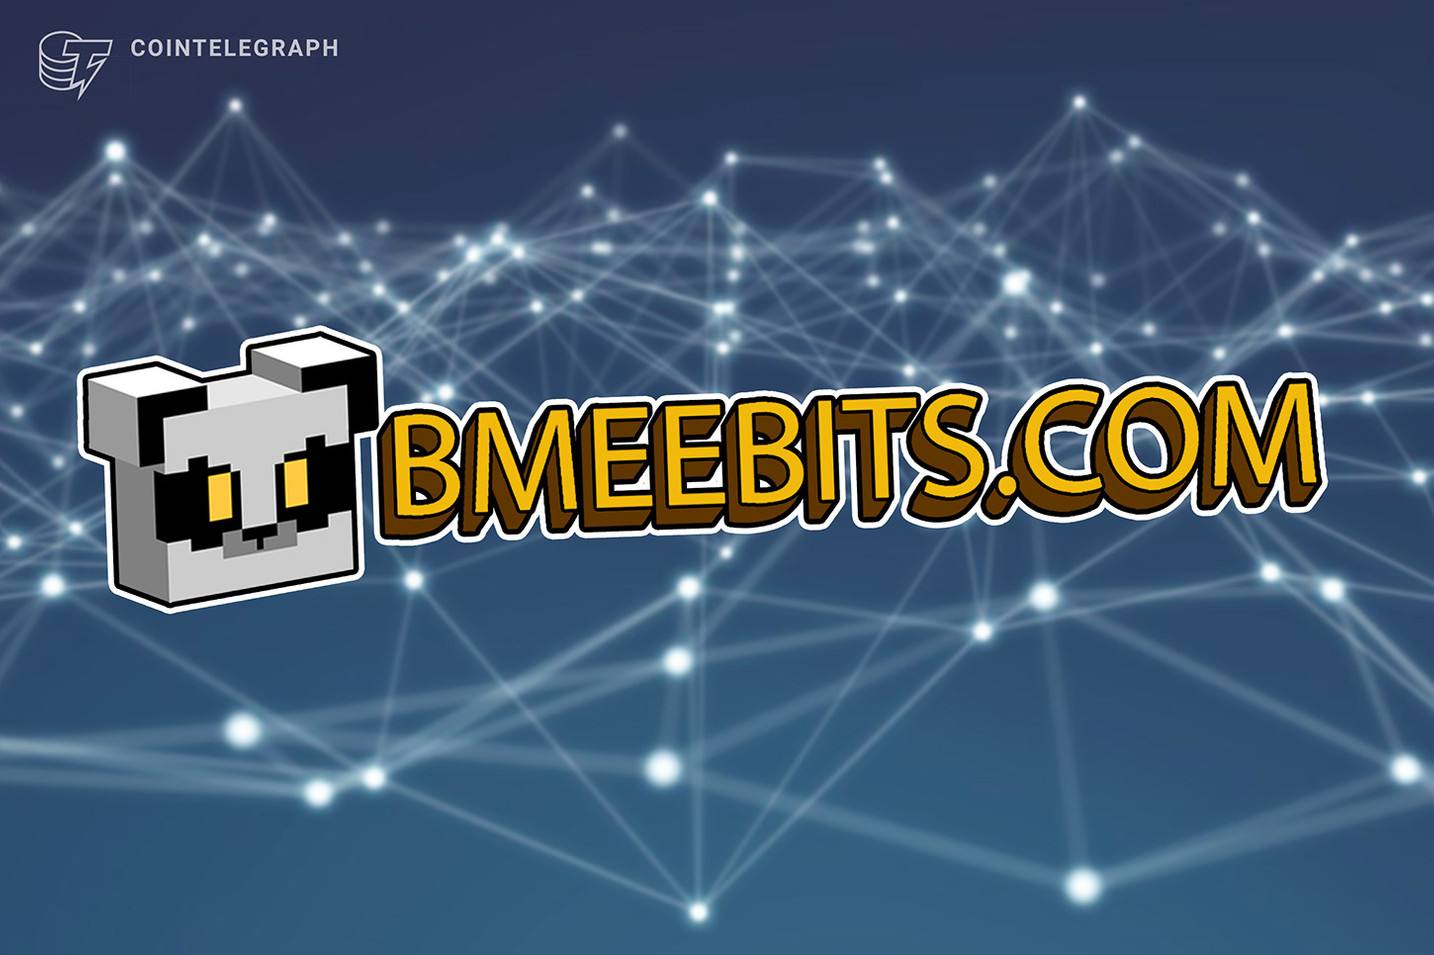 The BMeebits collection of 20K 3D NFT models sold out in 12 hours